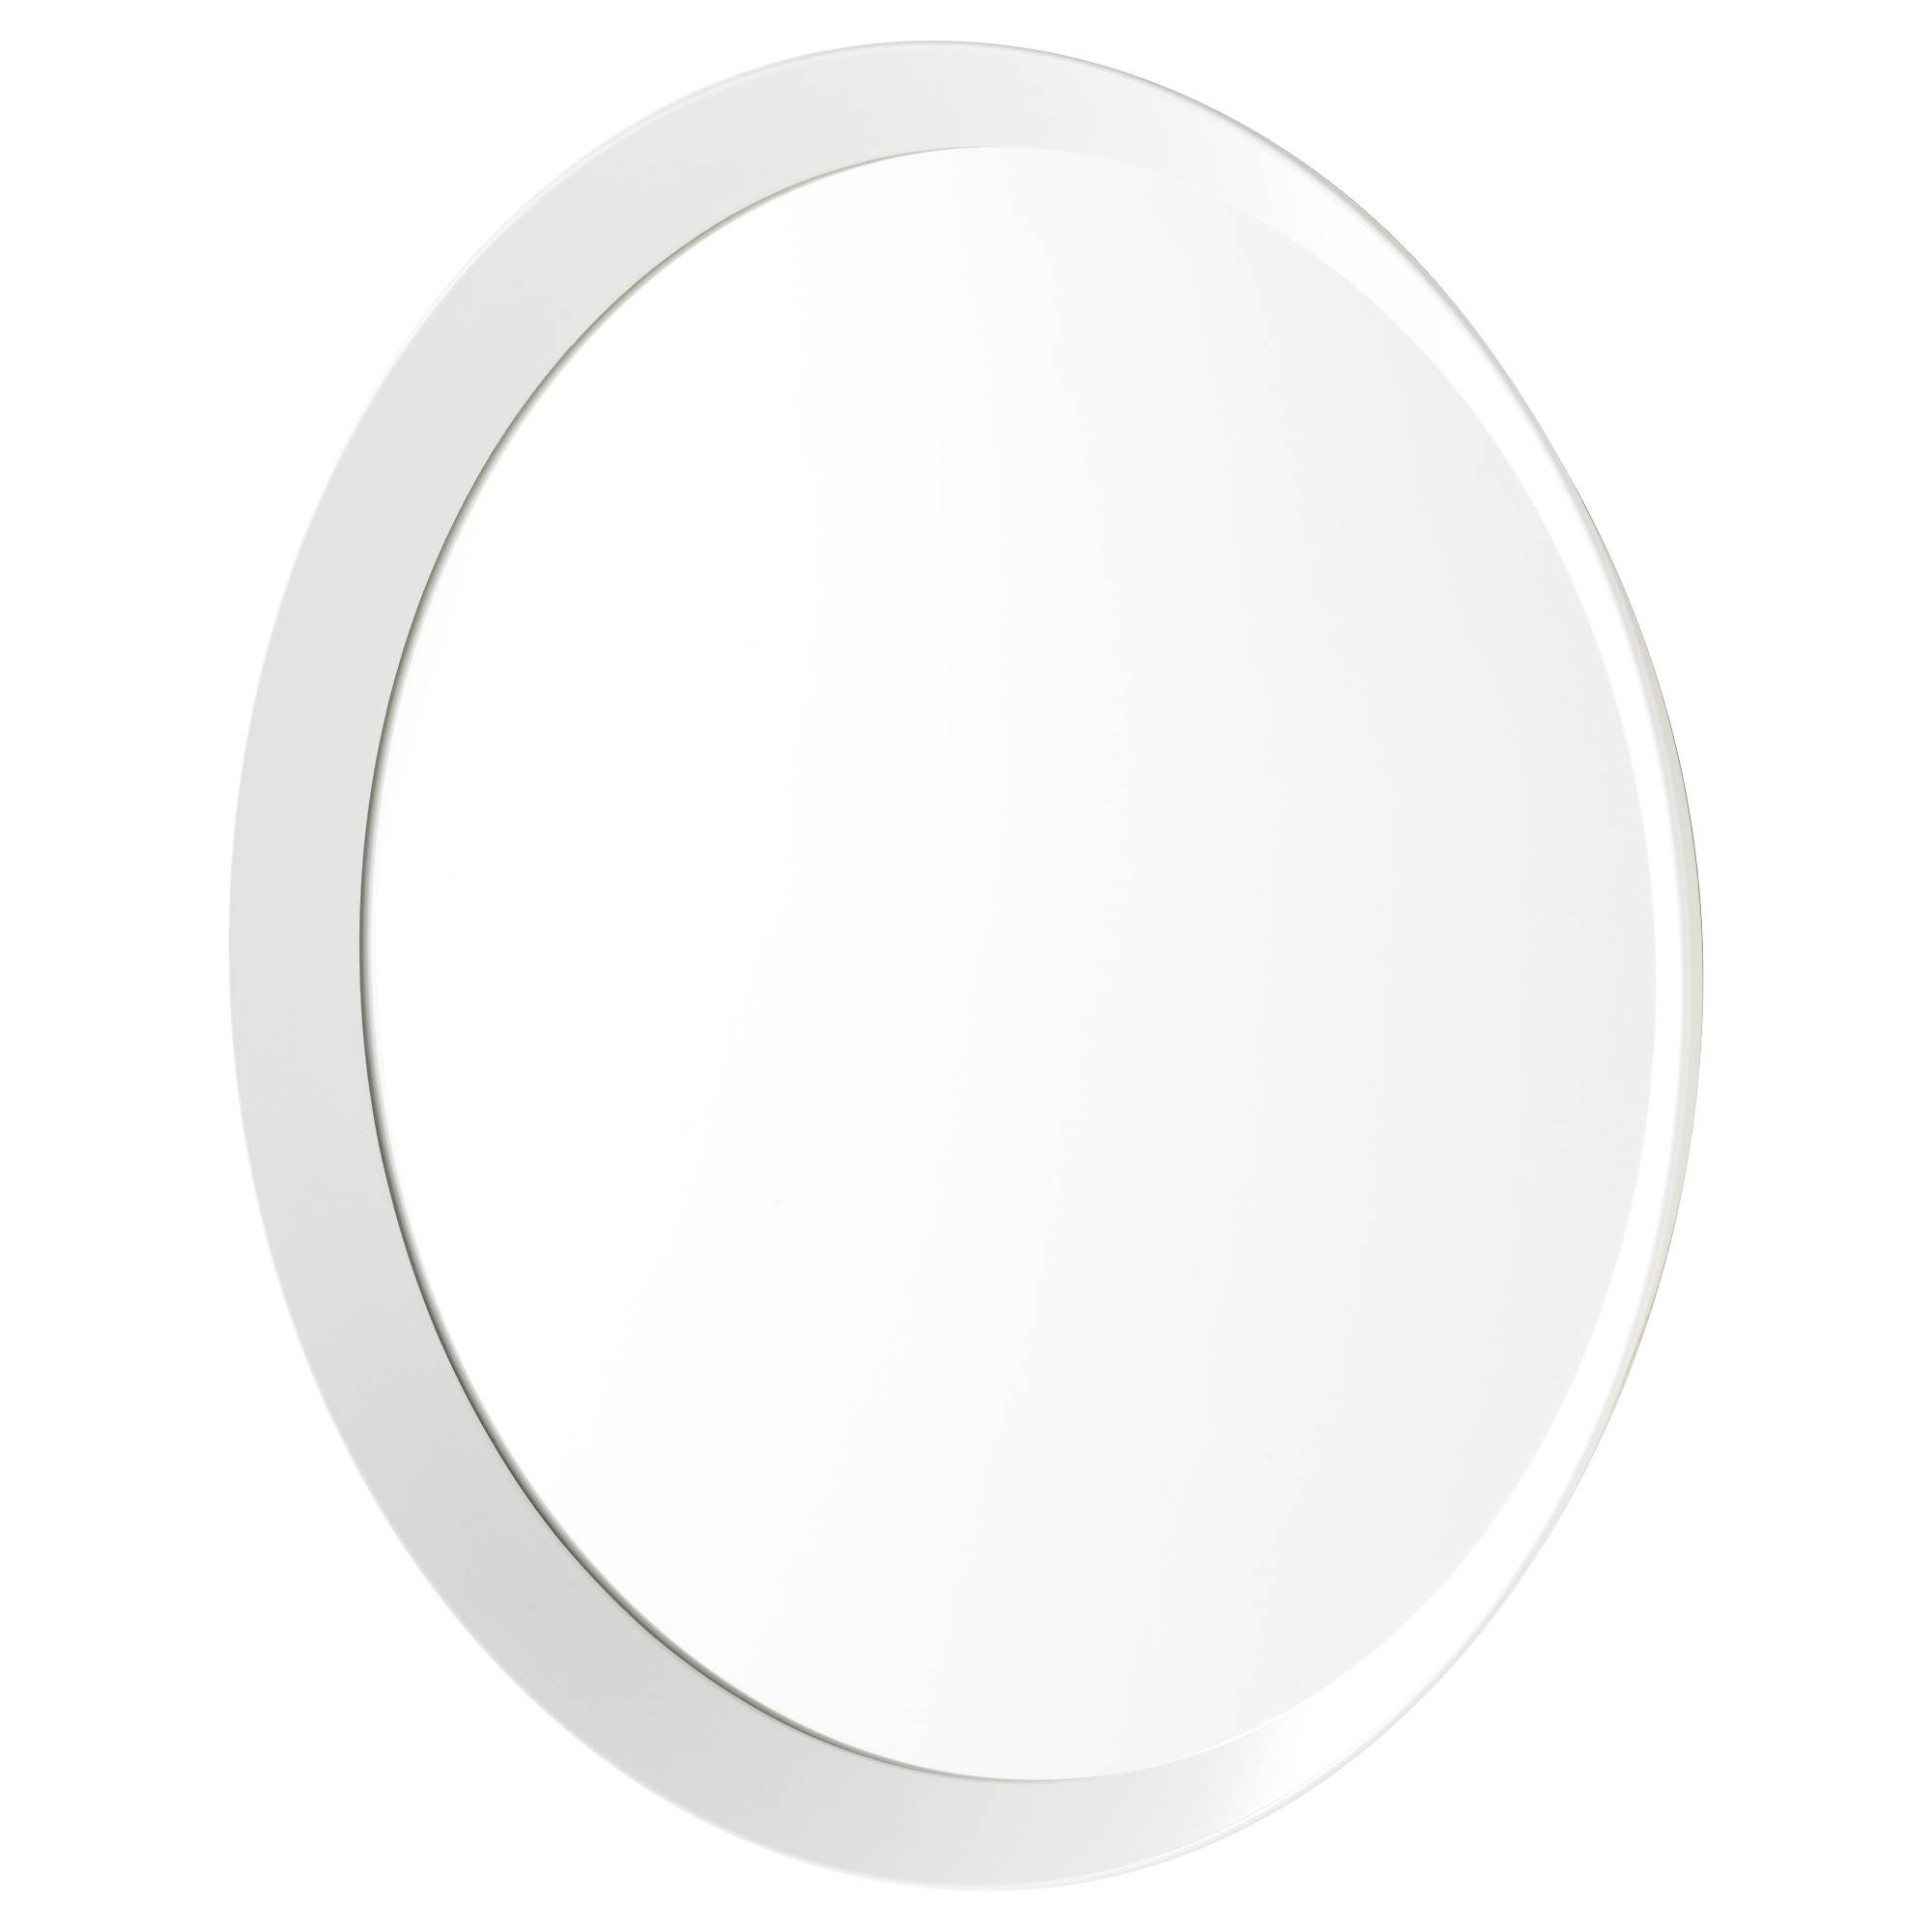 Round Mirrors - Circular & Oval Mirrors | Ikea for Round White Mirrors (Image 8 of 15)